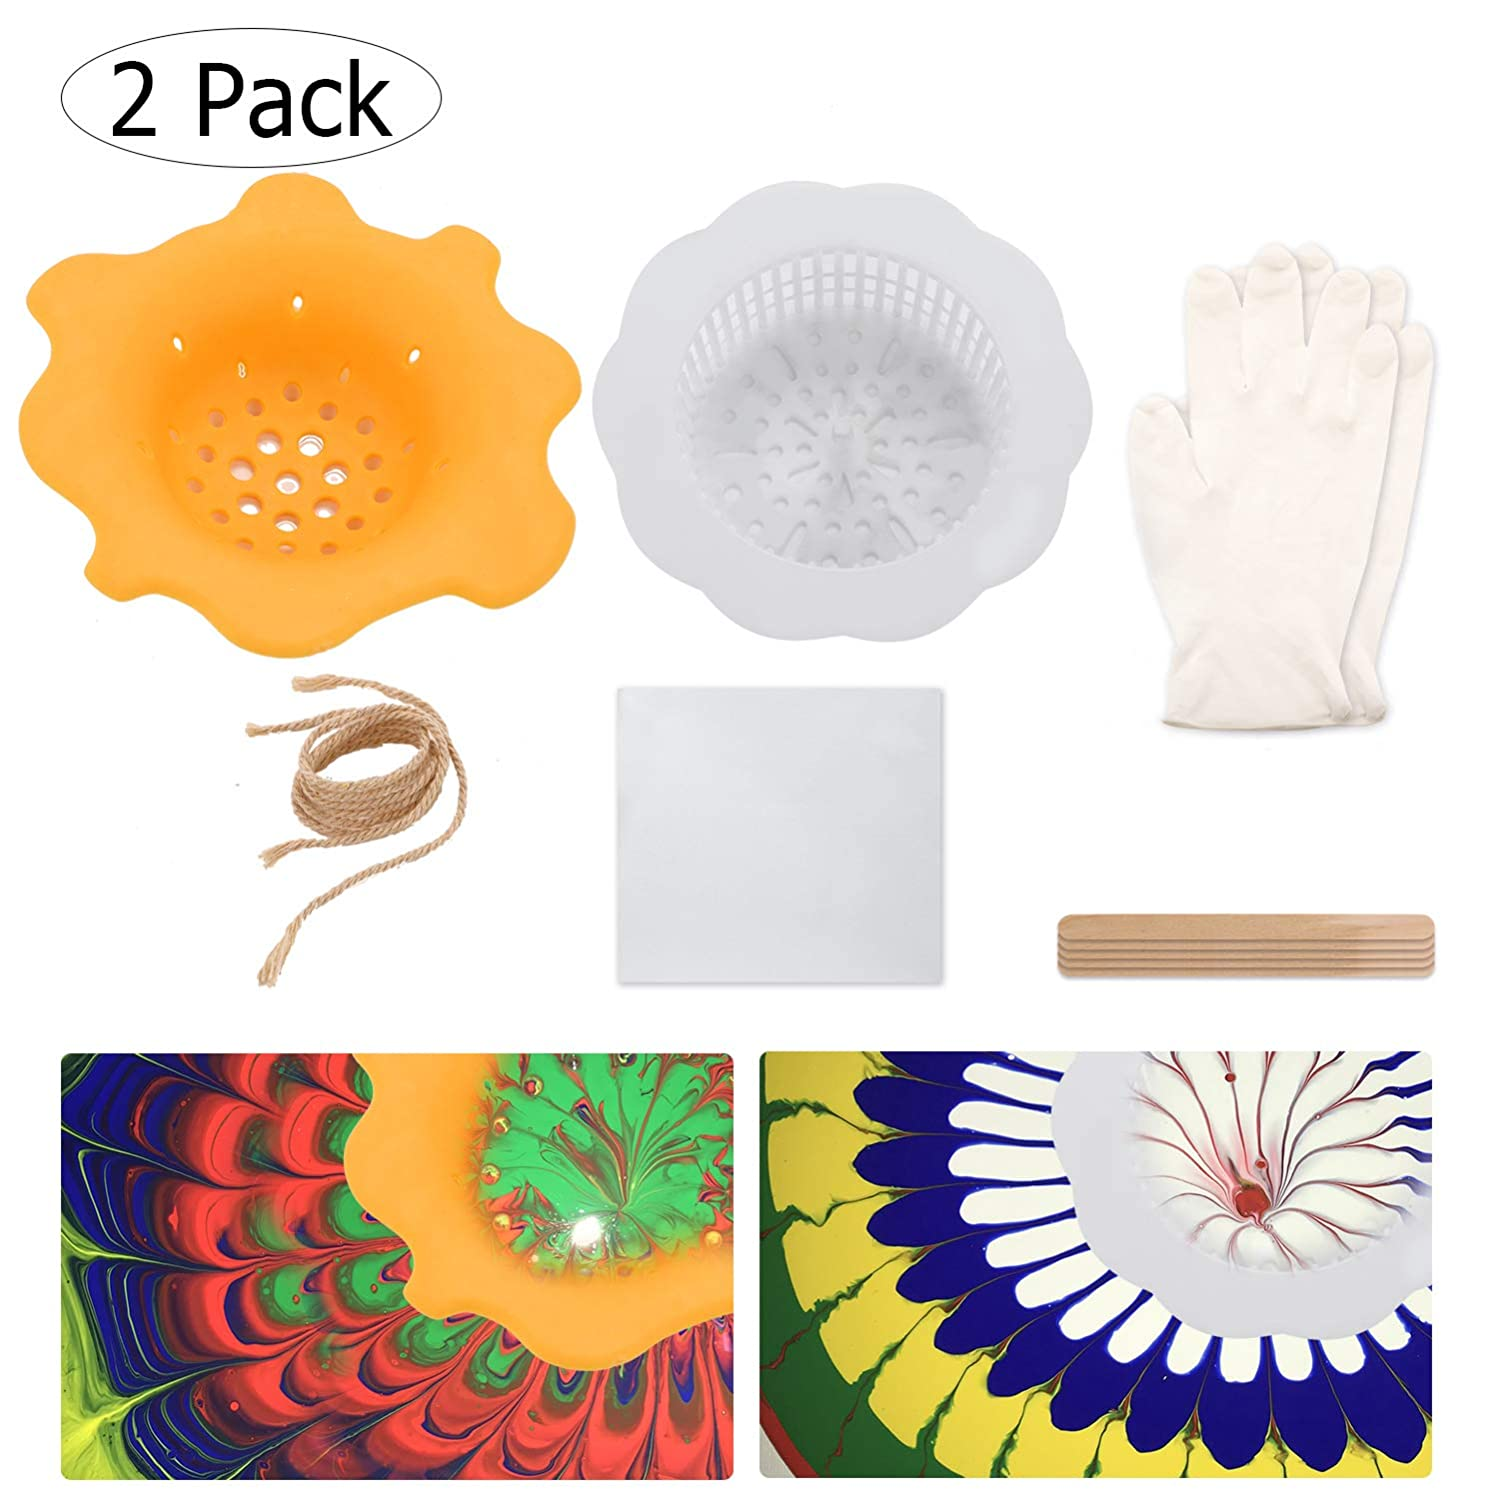 Acrylic Paint Pouring Supplies Fluid Pouring Art Supplies Paint Pouring Strainer Kits Flower Drain Basket Strainer Creating Unique Patterns and Designs(2 Pack)